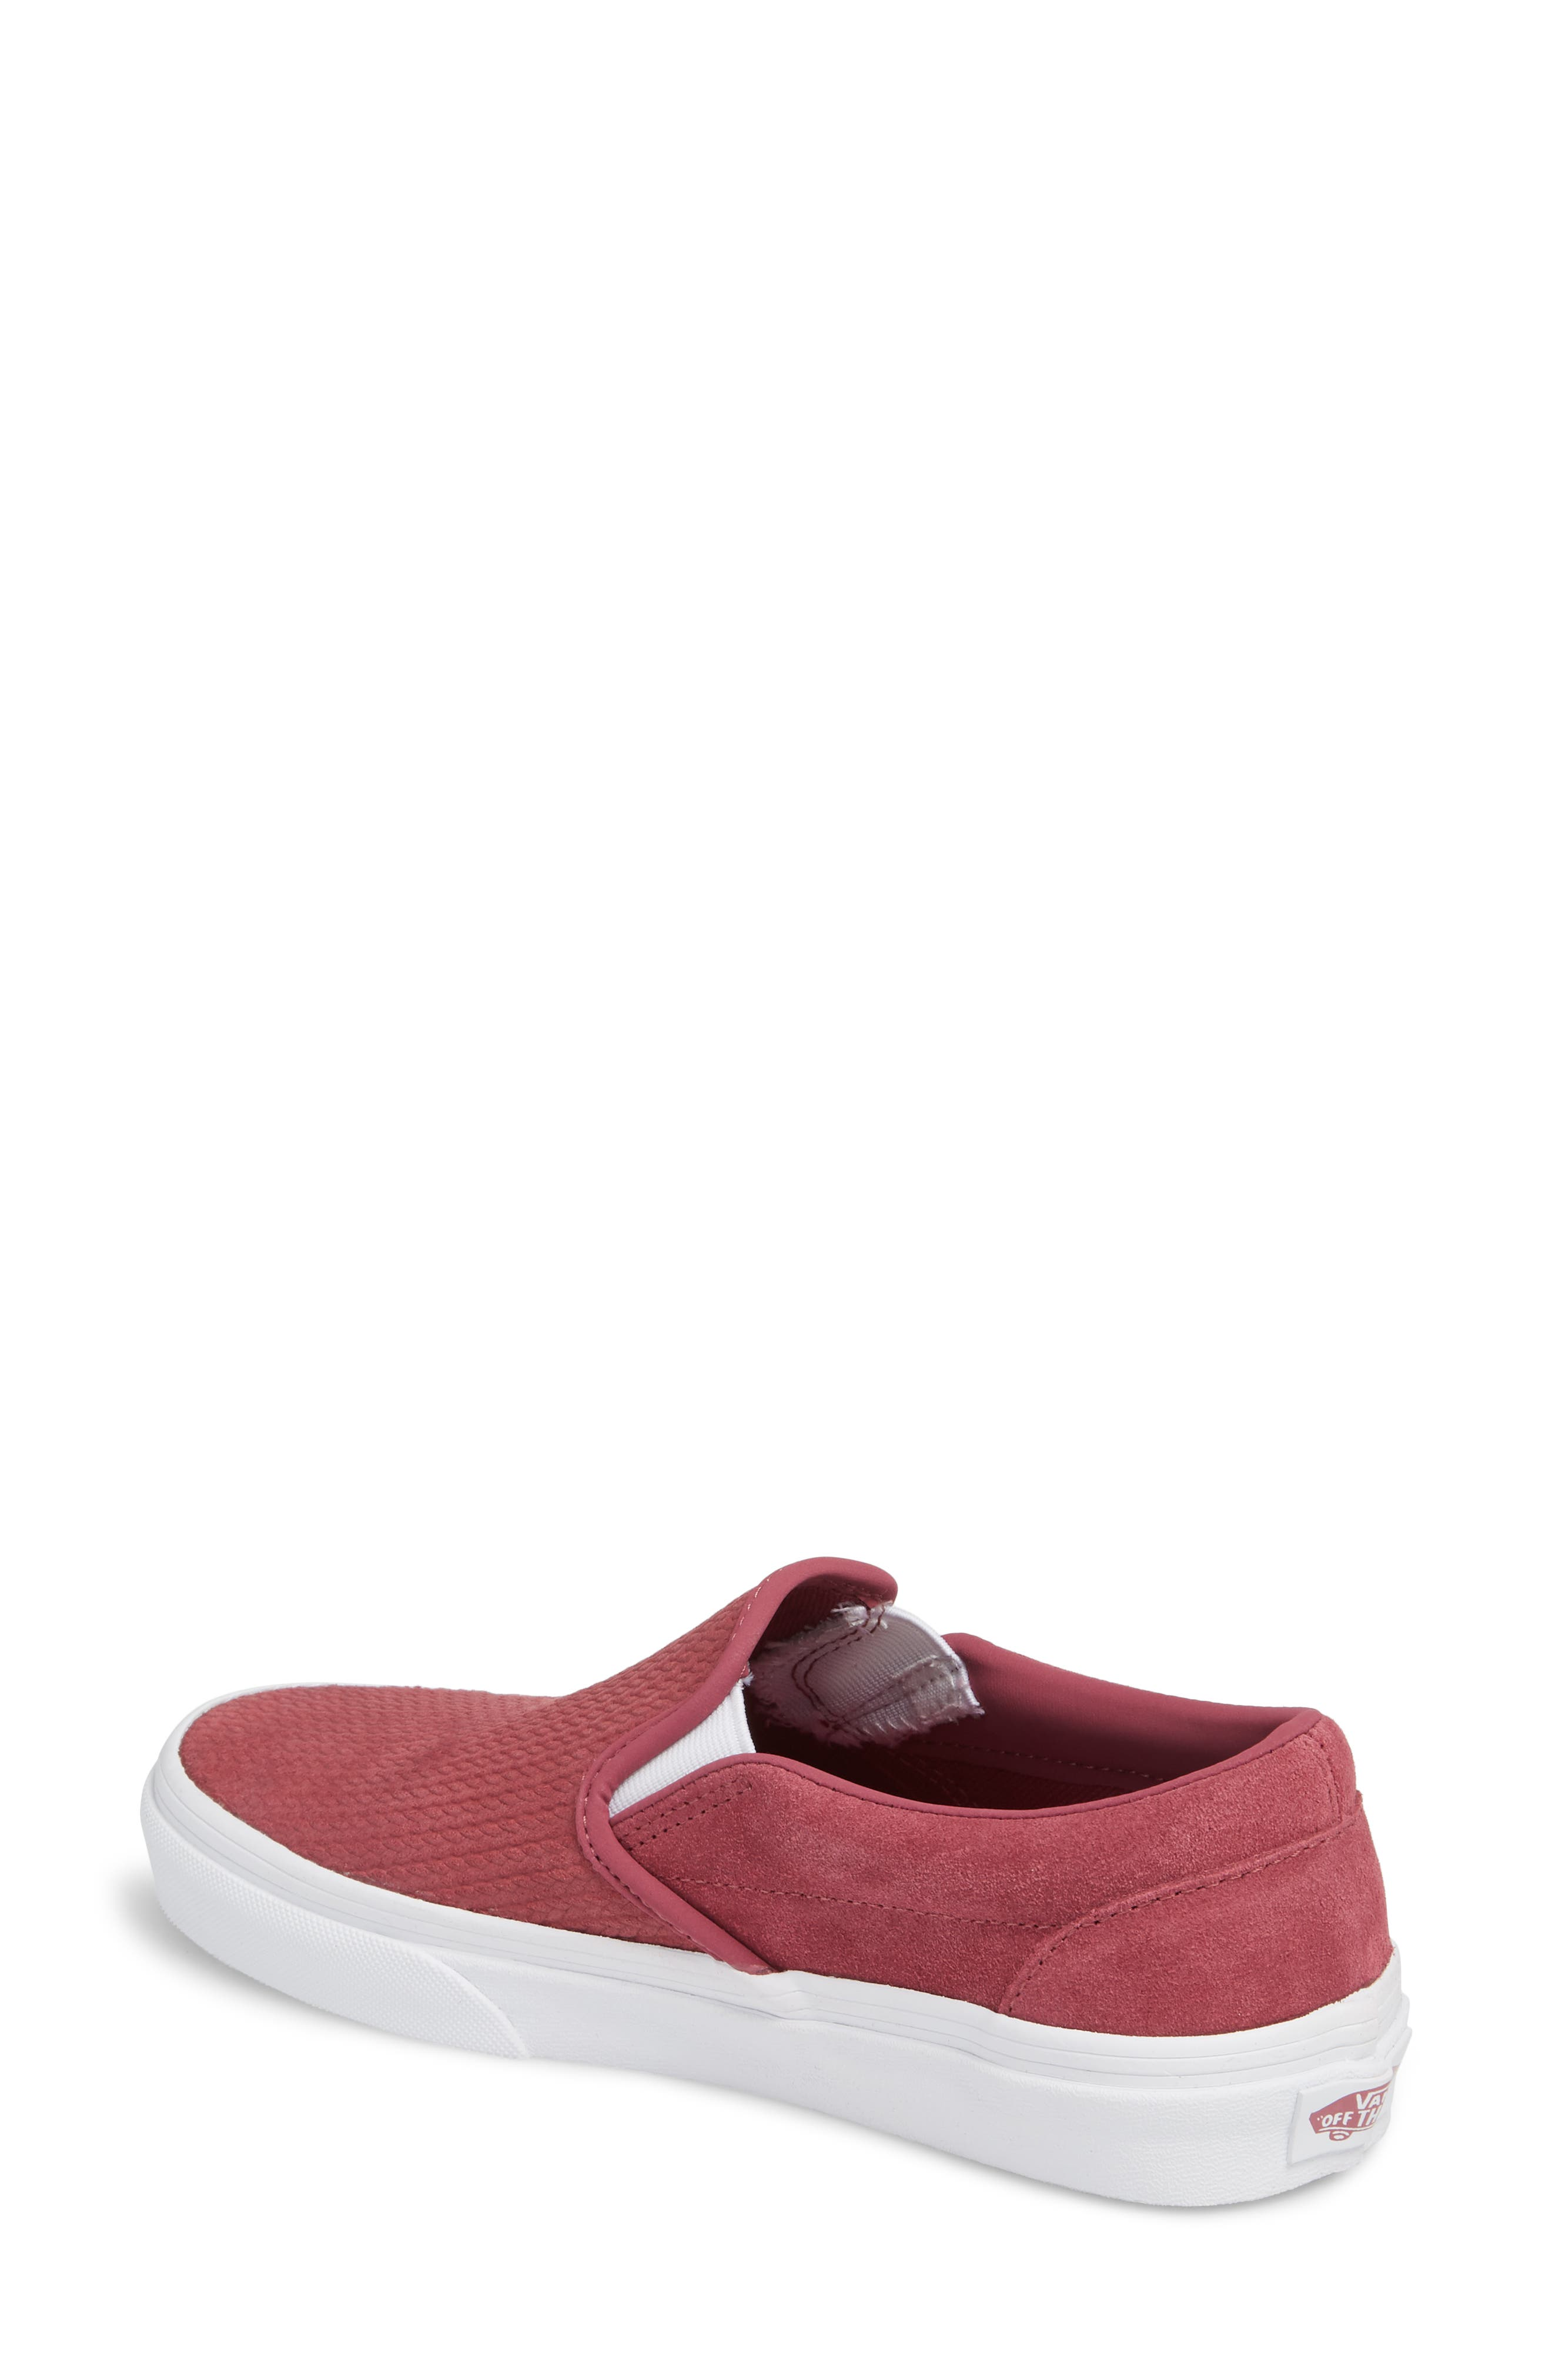 Classic Slip-On Sneaker,                             Alternate thumbnail 122, color,